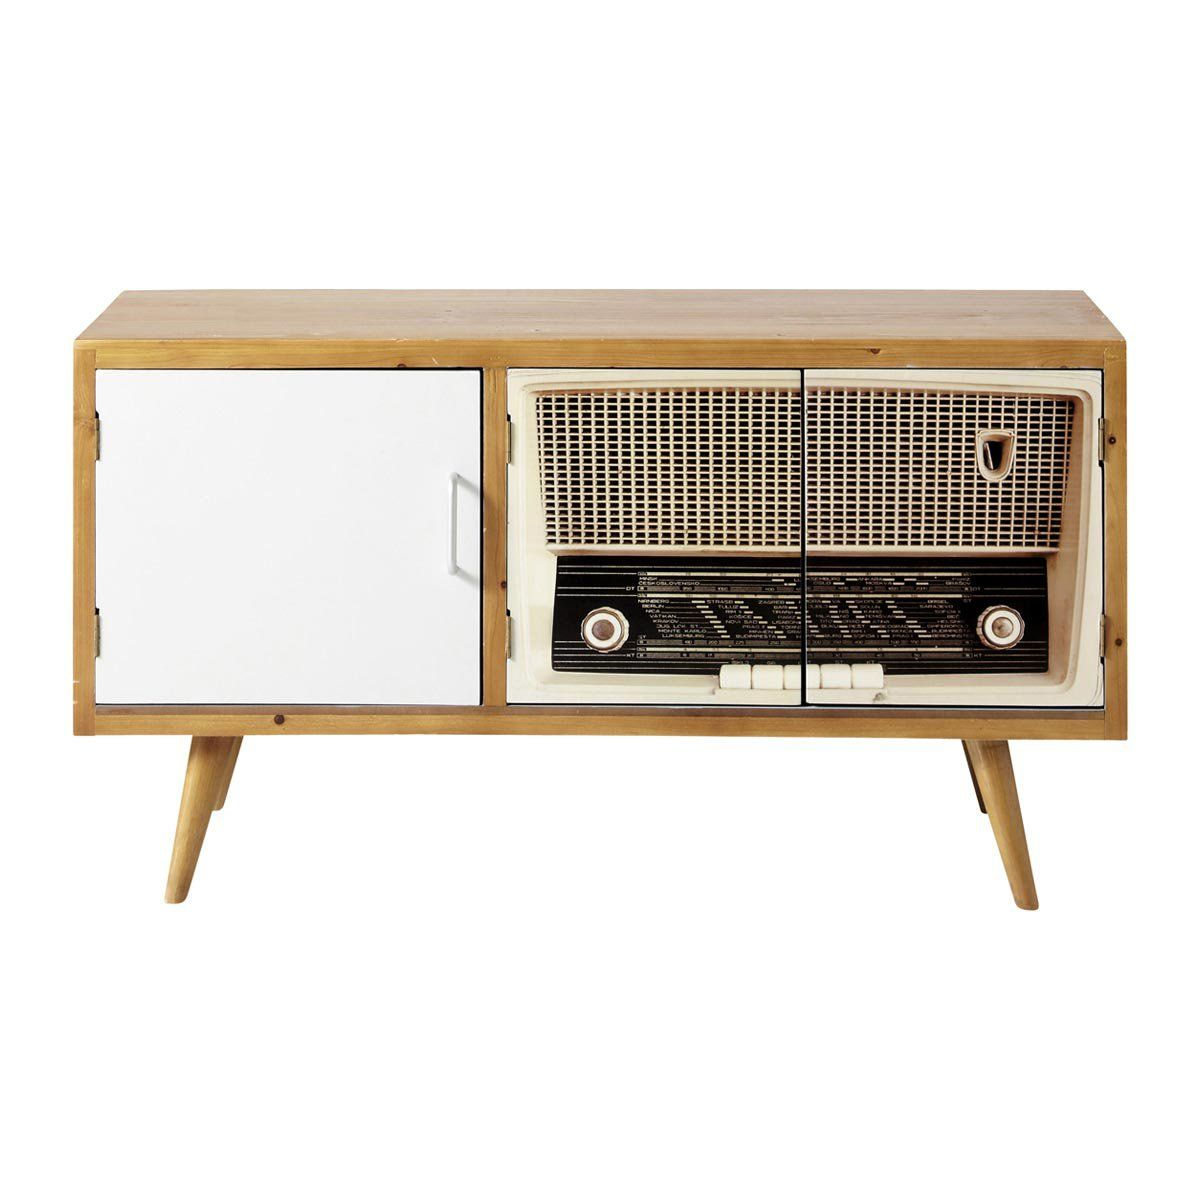 Maisons du monde mobile tv vintage fifty 39 s home is not a place is a feeling pinterest - Mobile porta tv maison du monde ...